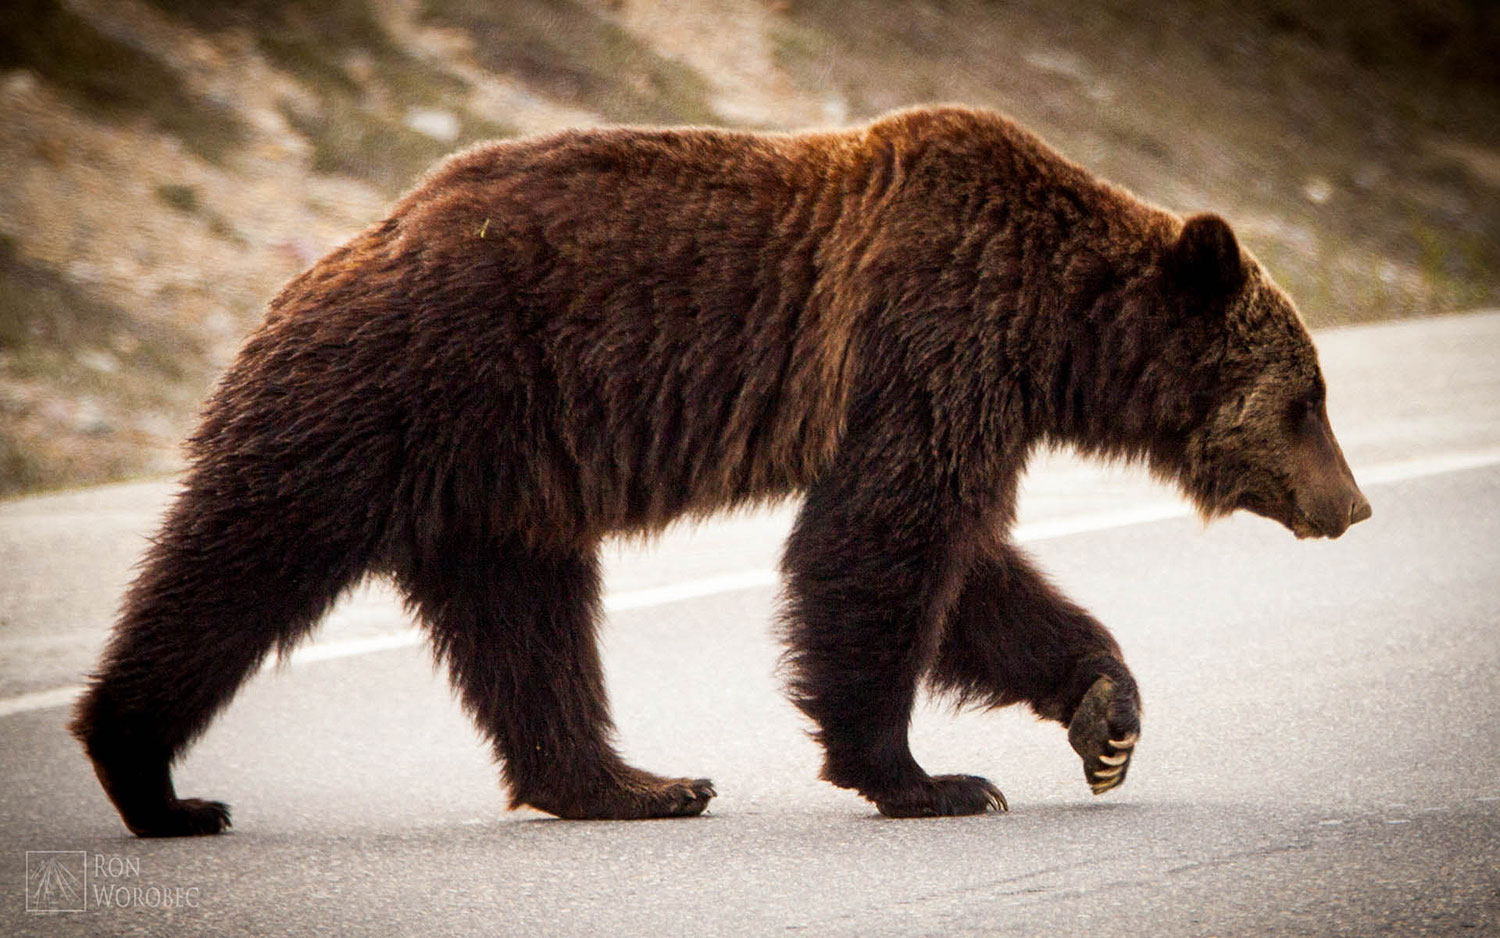 bear_crossing_road.jpg